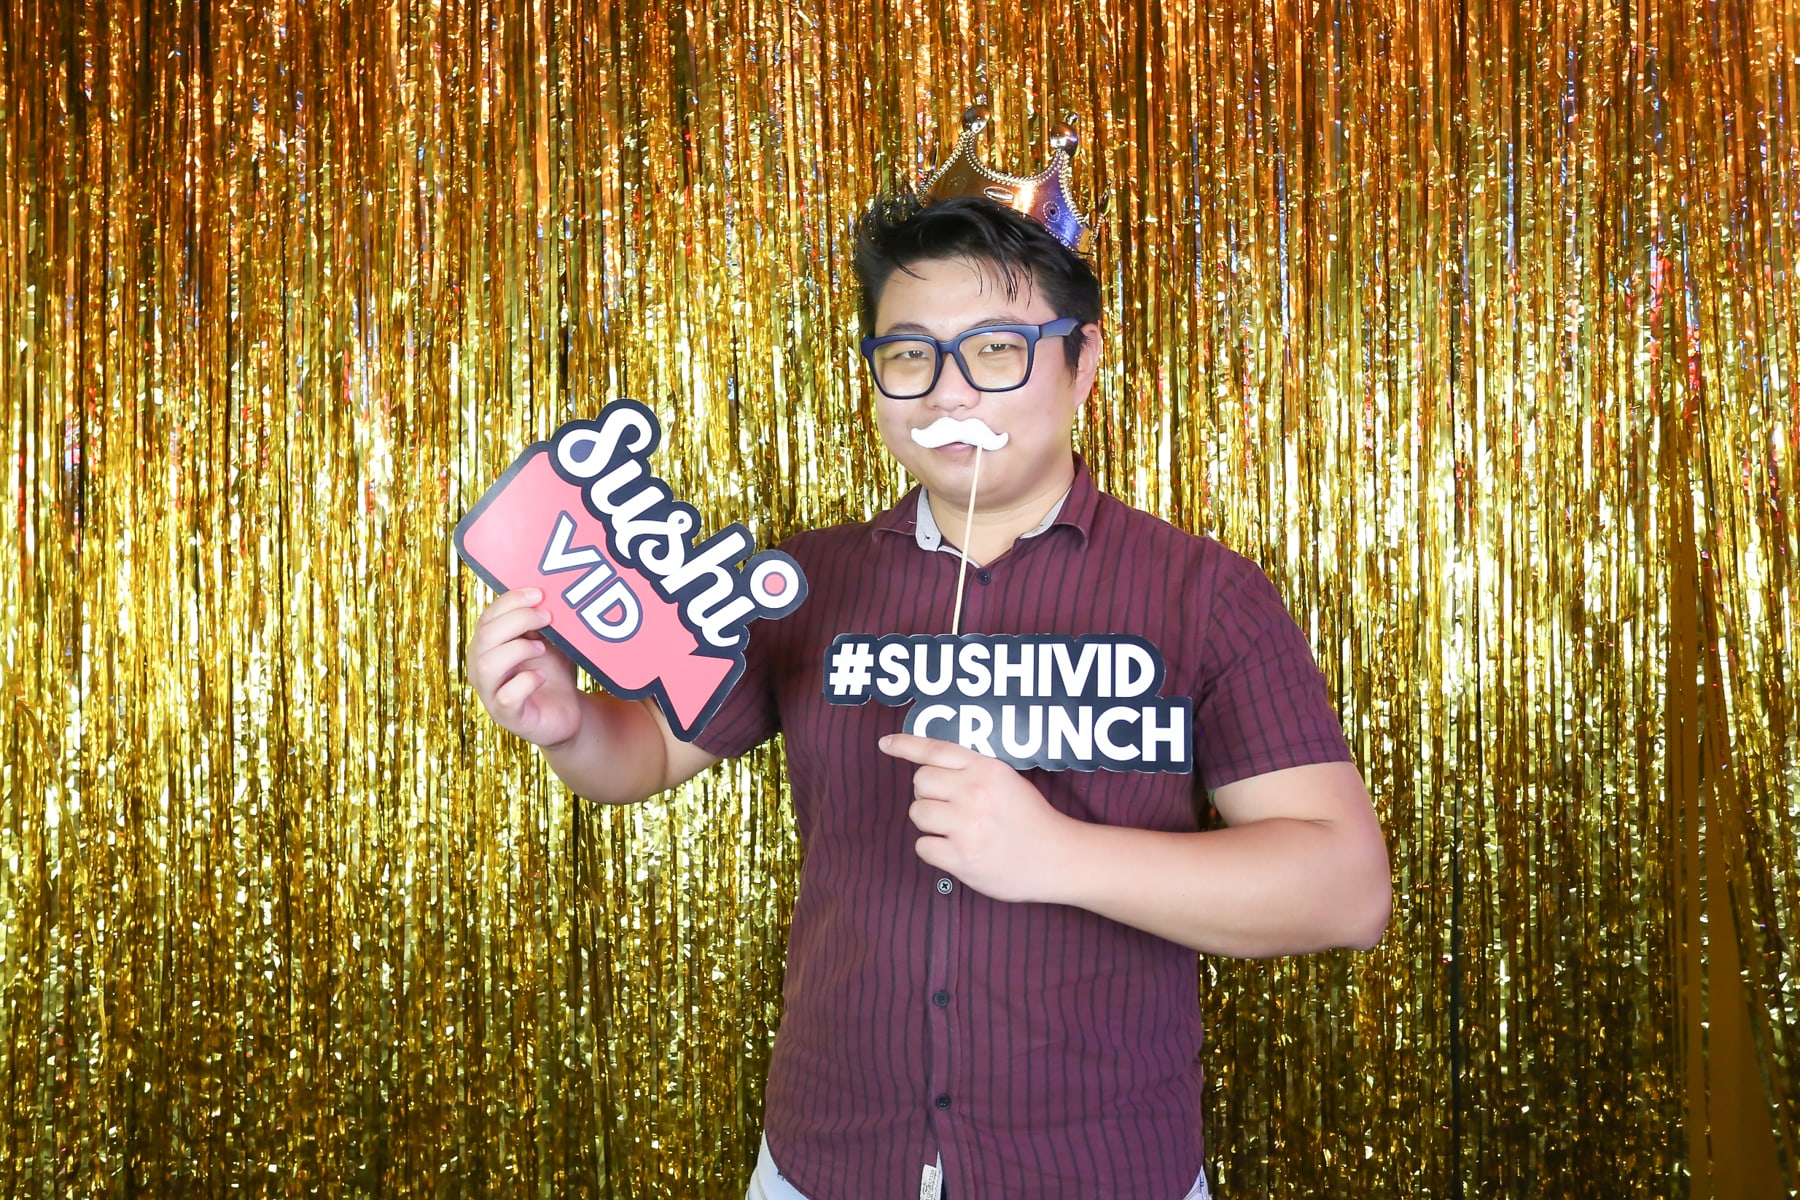 Sushivid+crunch+tagbooth+153